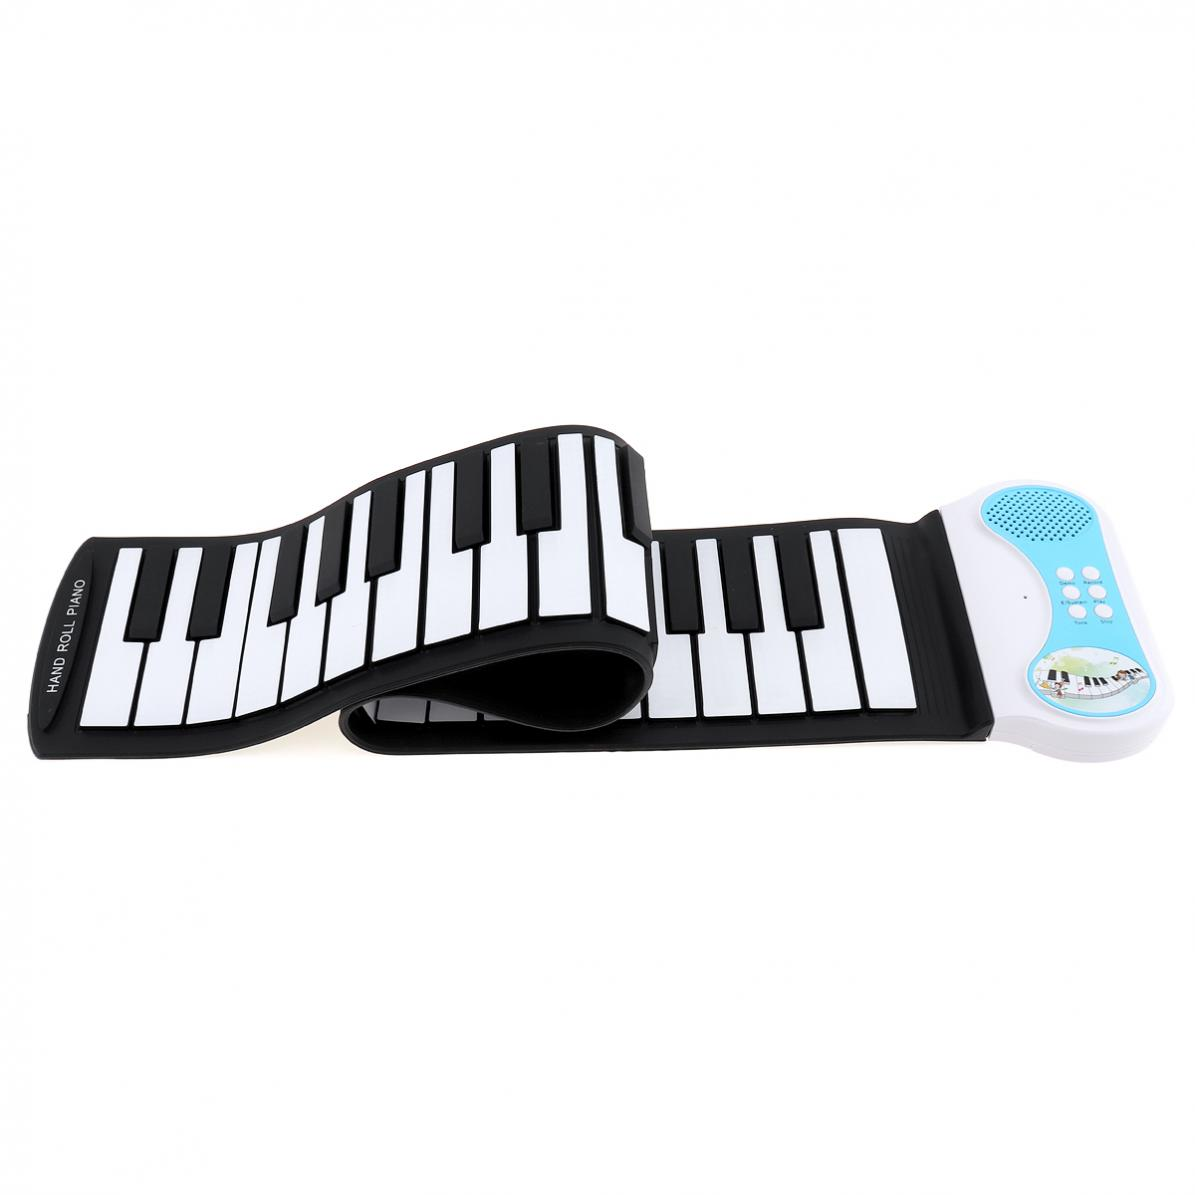 49 Keys Flexible Hand Roll Up Piano Electronic Keyboard Organ Enlightenment Music Gift For Children Students